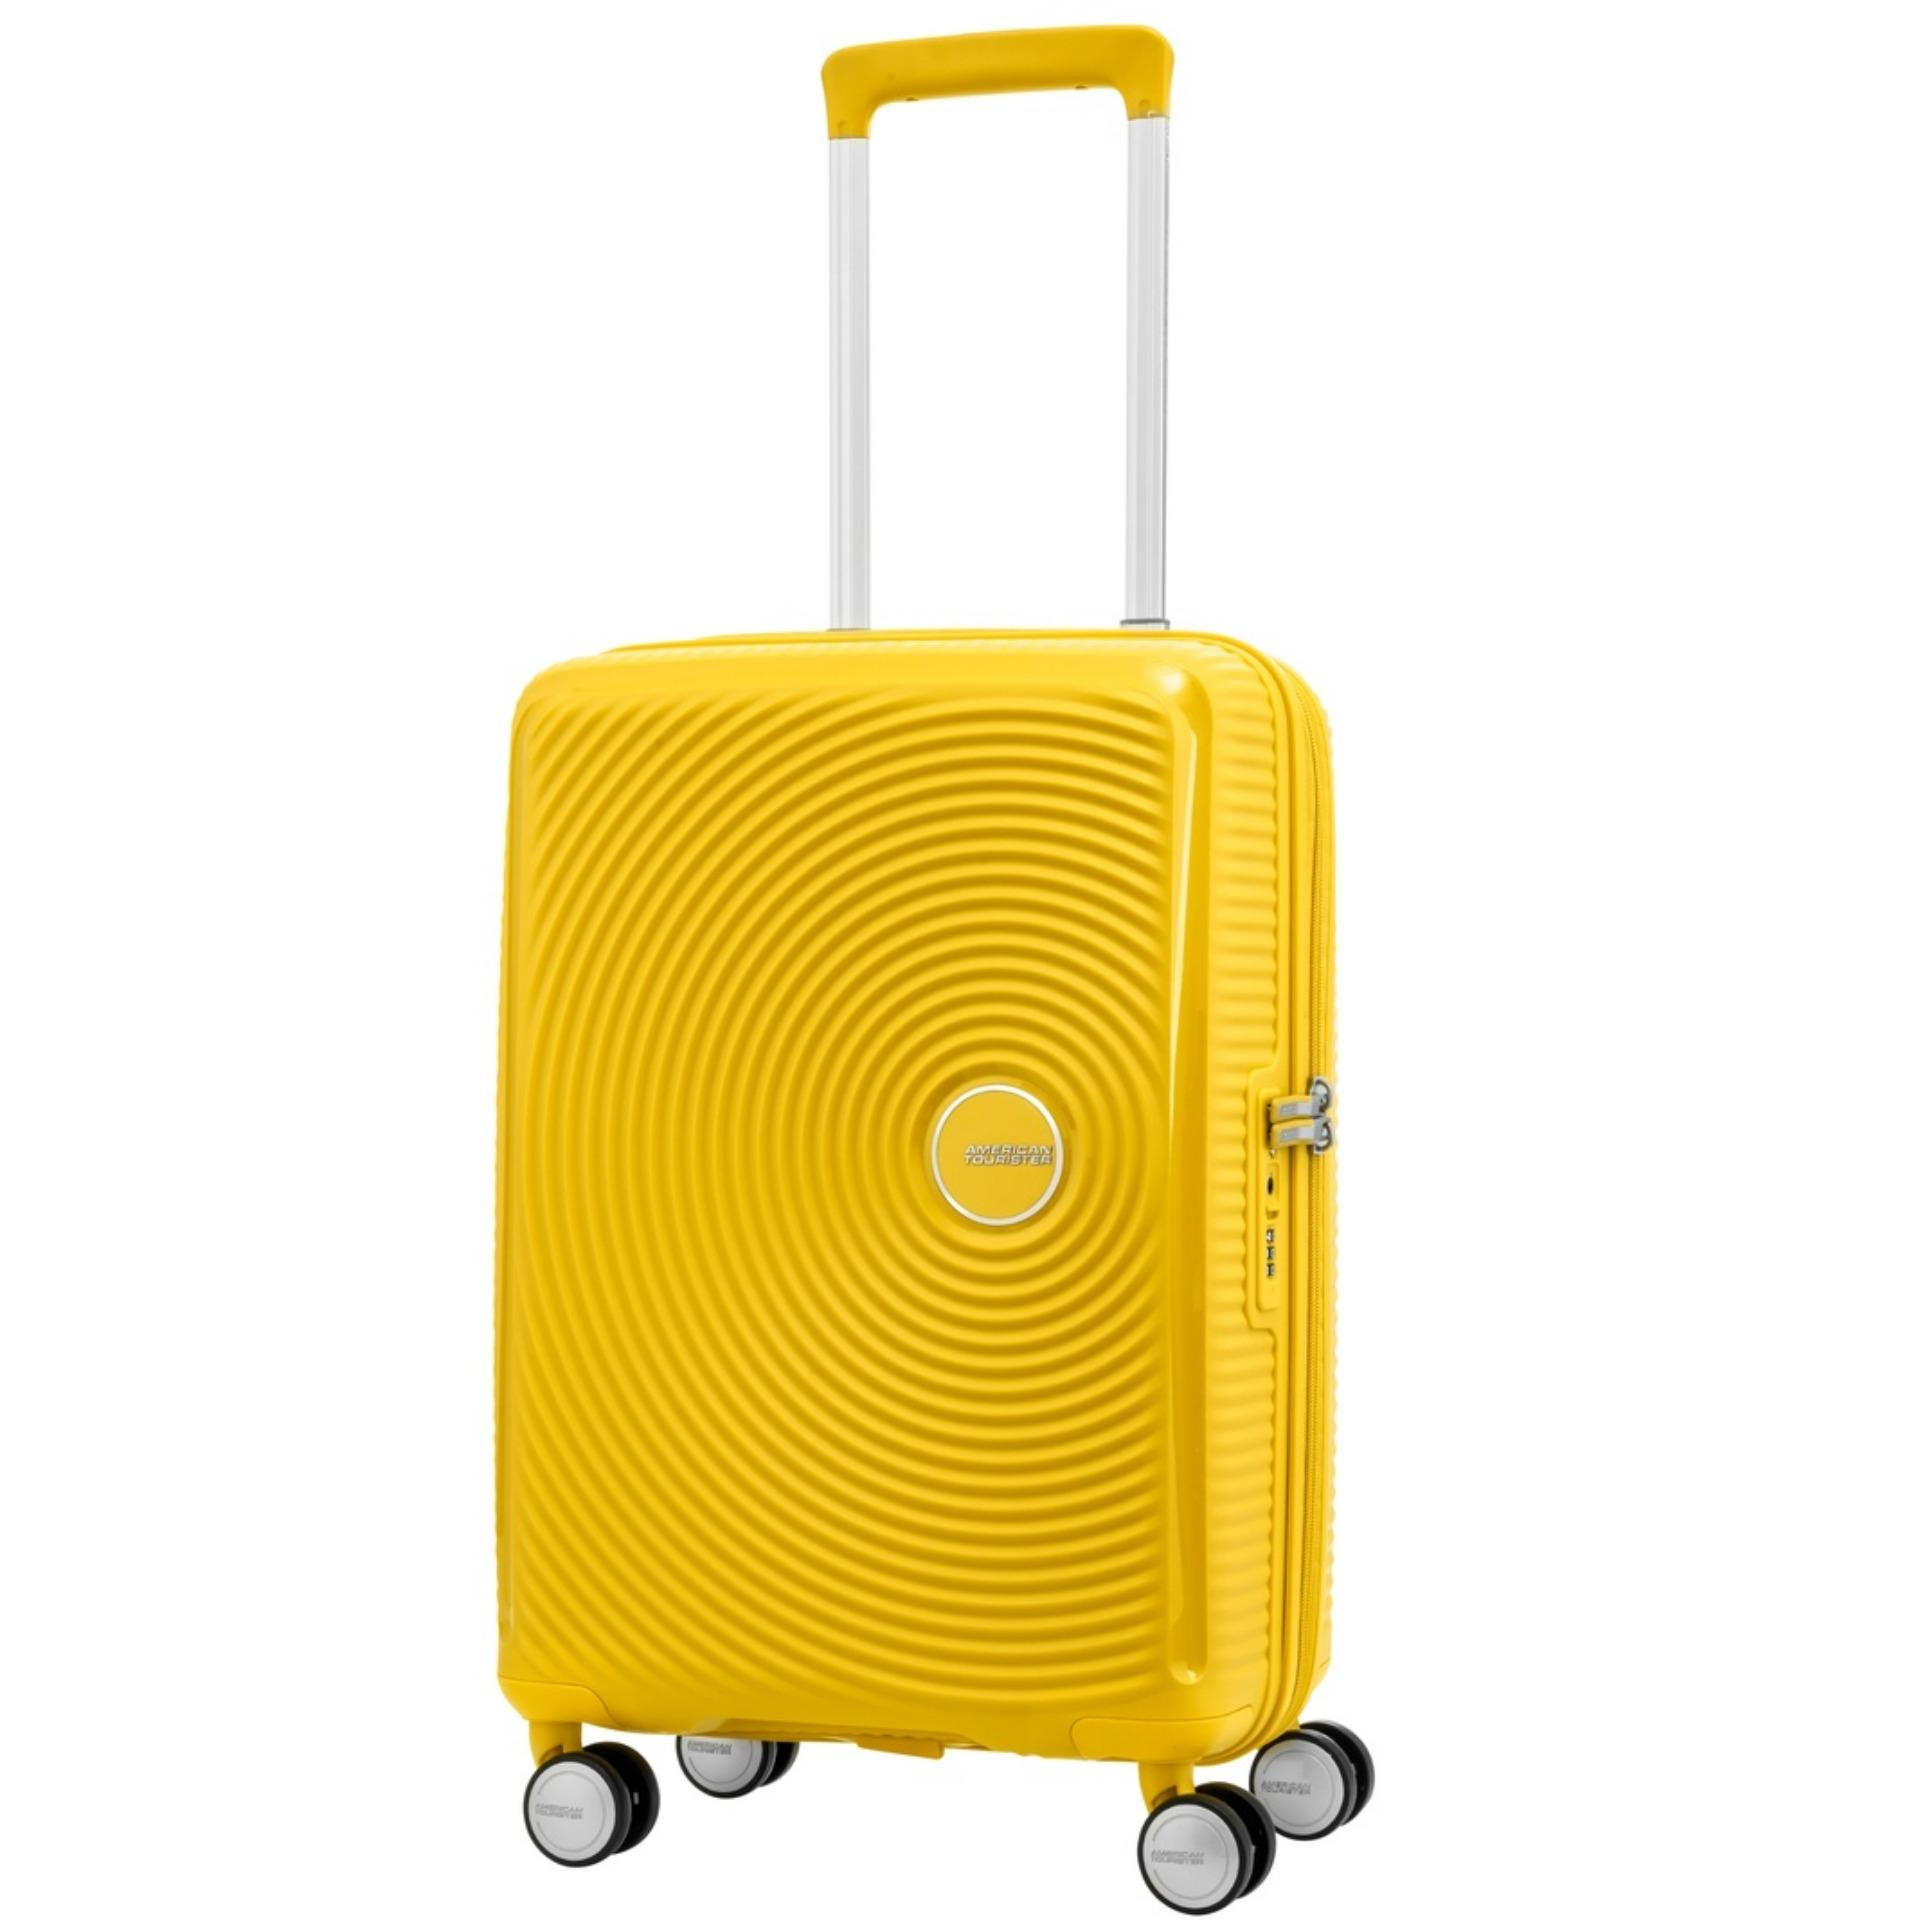 Price American Tourister Curio Spinner 55 20 Tsa Golden Yellow American Tourister Online